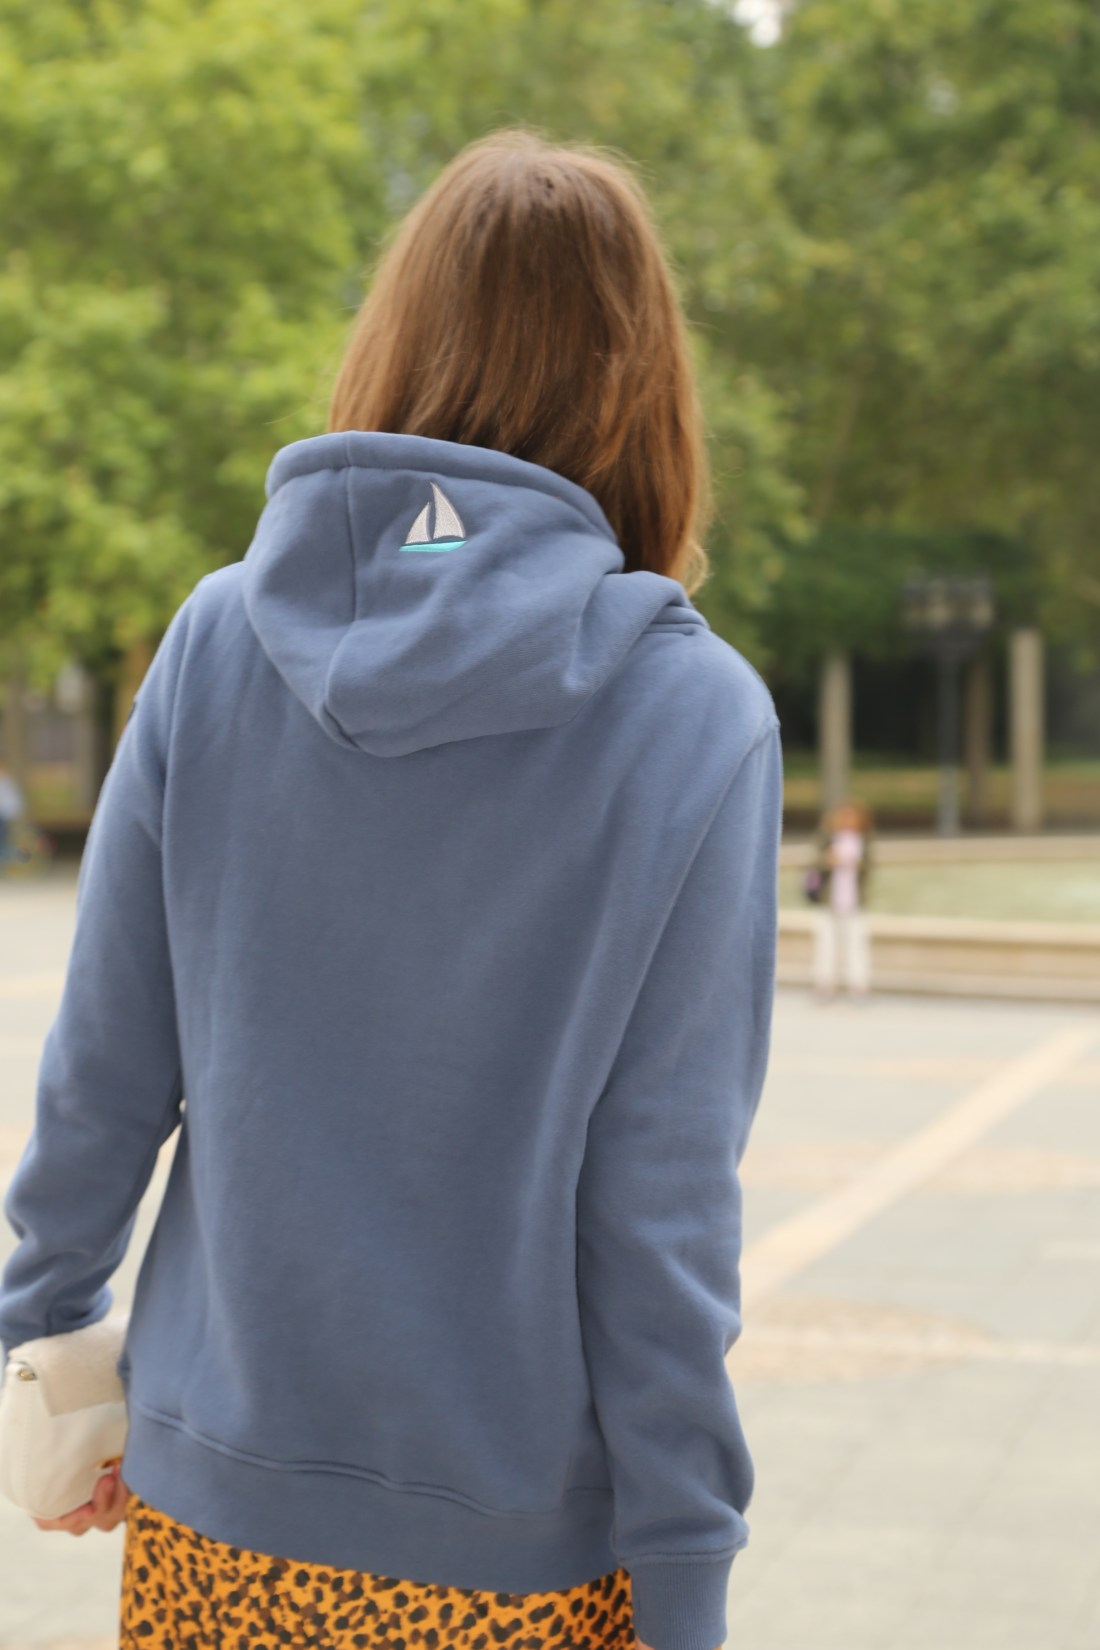 Hoodie_herbst-trends_leopardenmuster-rock_mode-blog-ue40_oceanblue-style (15)-01